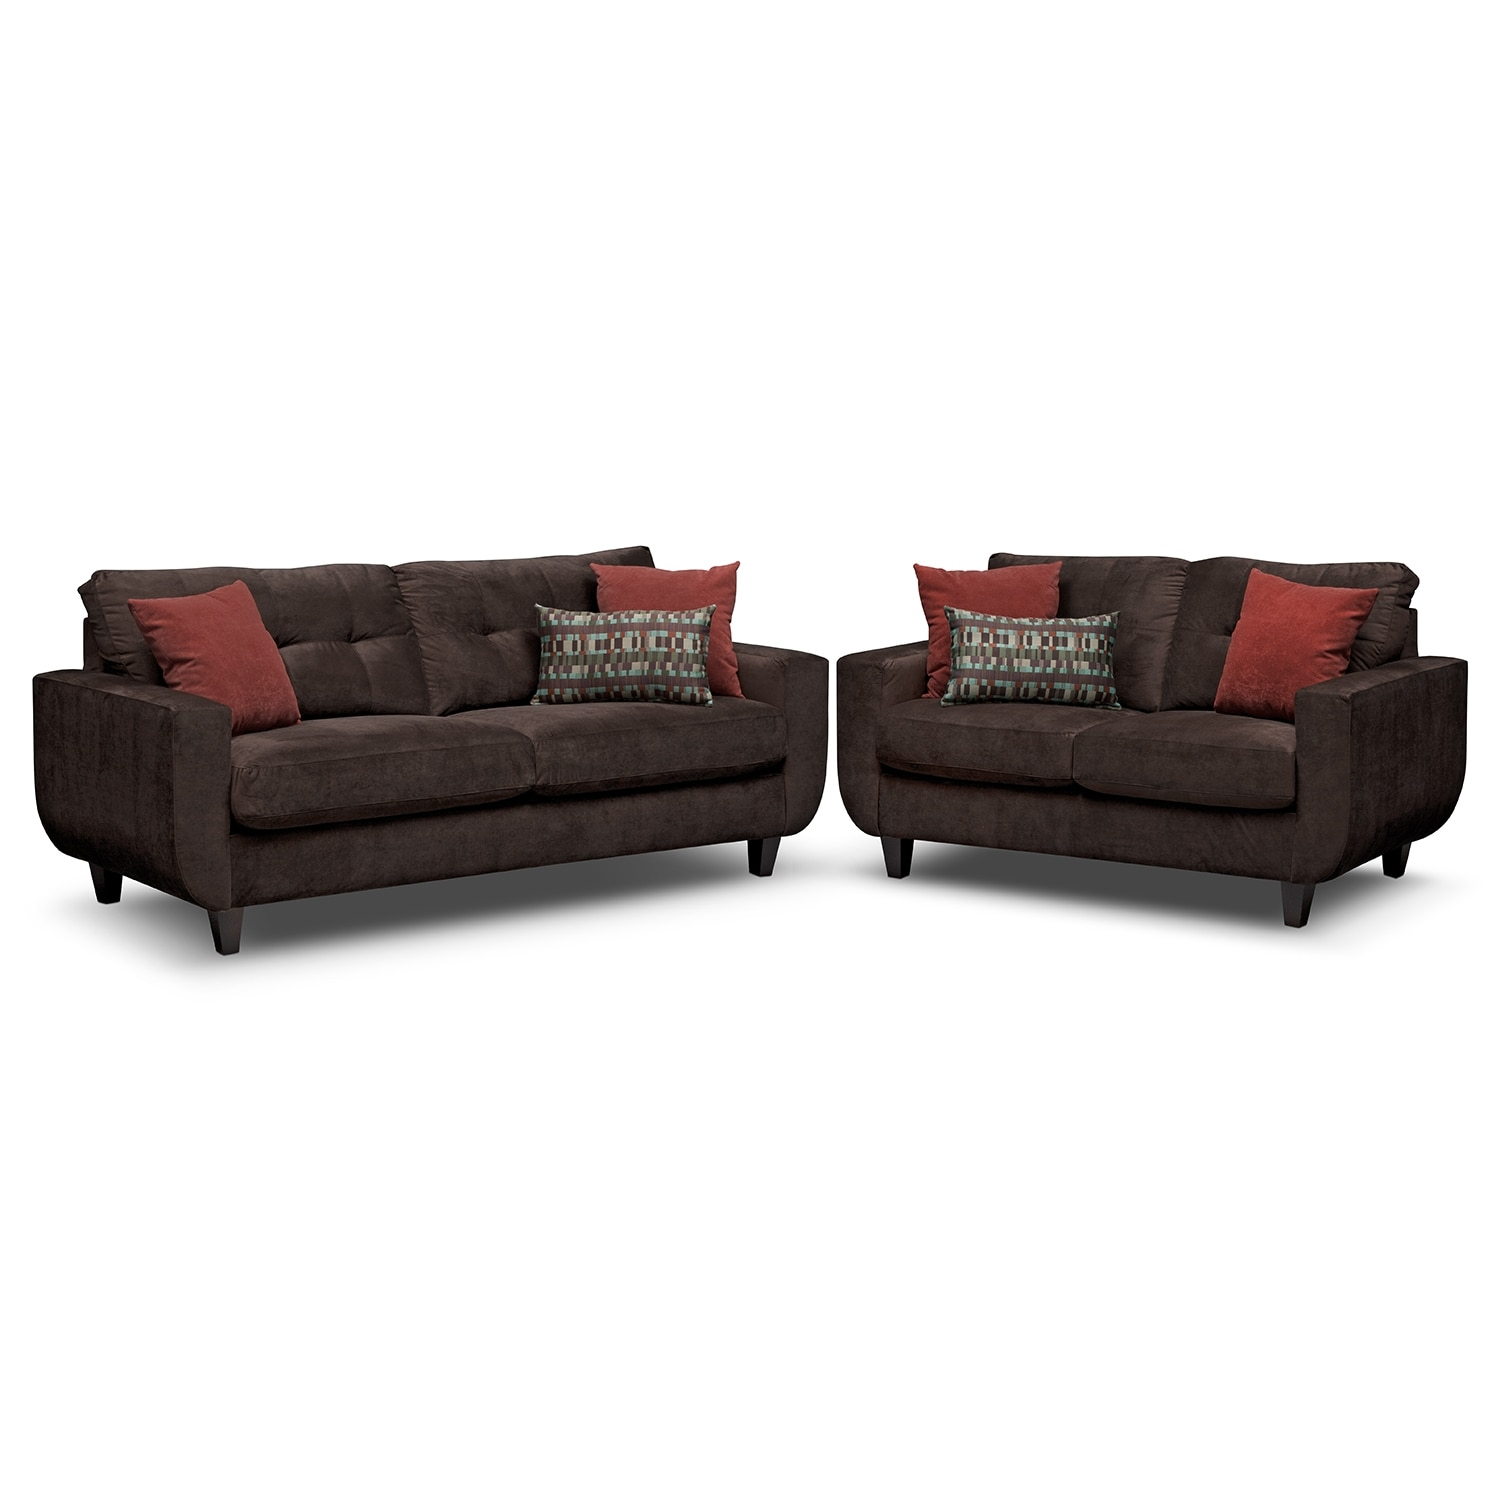 West Village Sofa and Loveseat Set - Chocolate